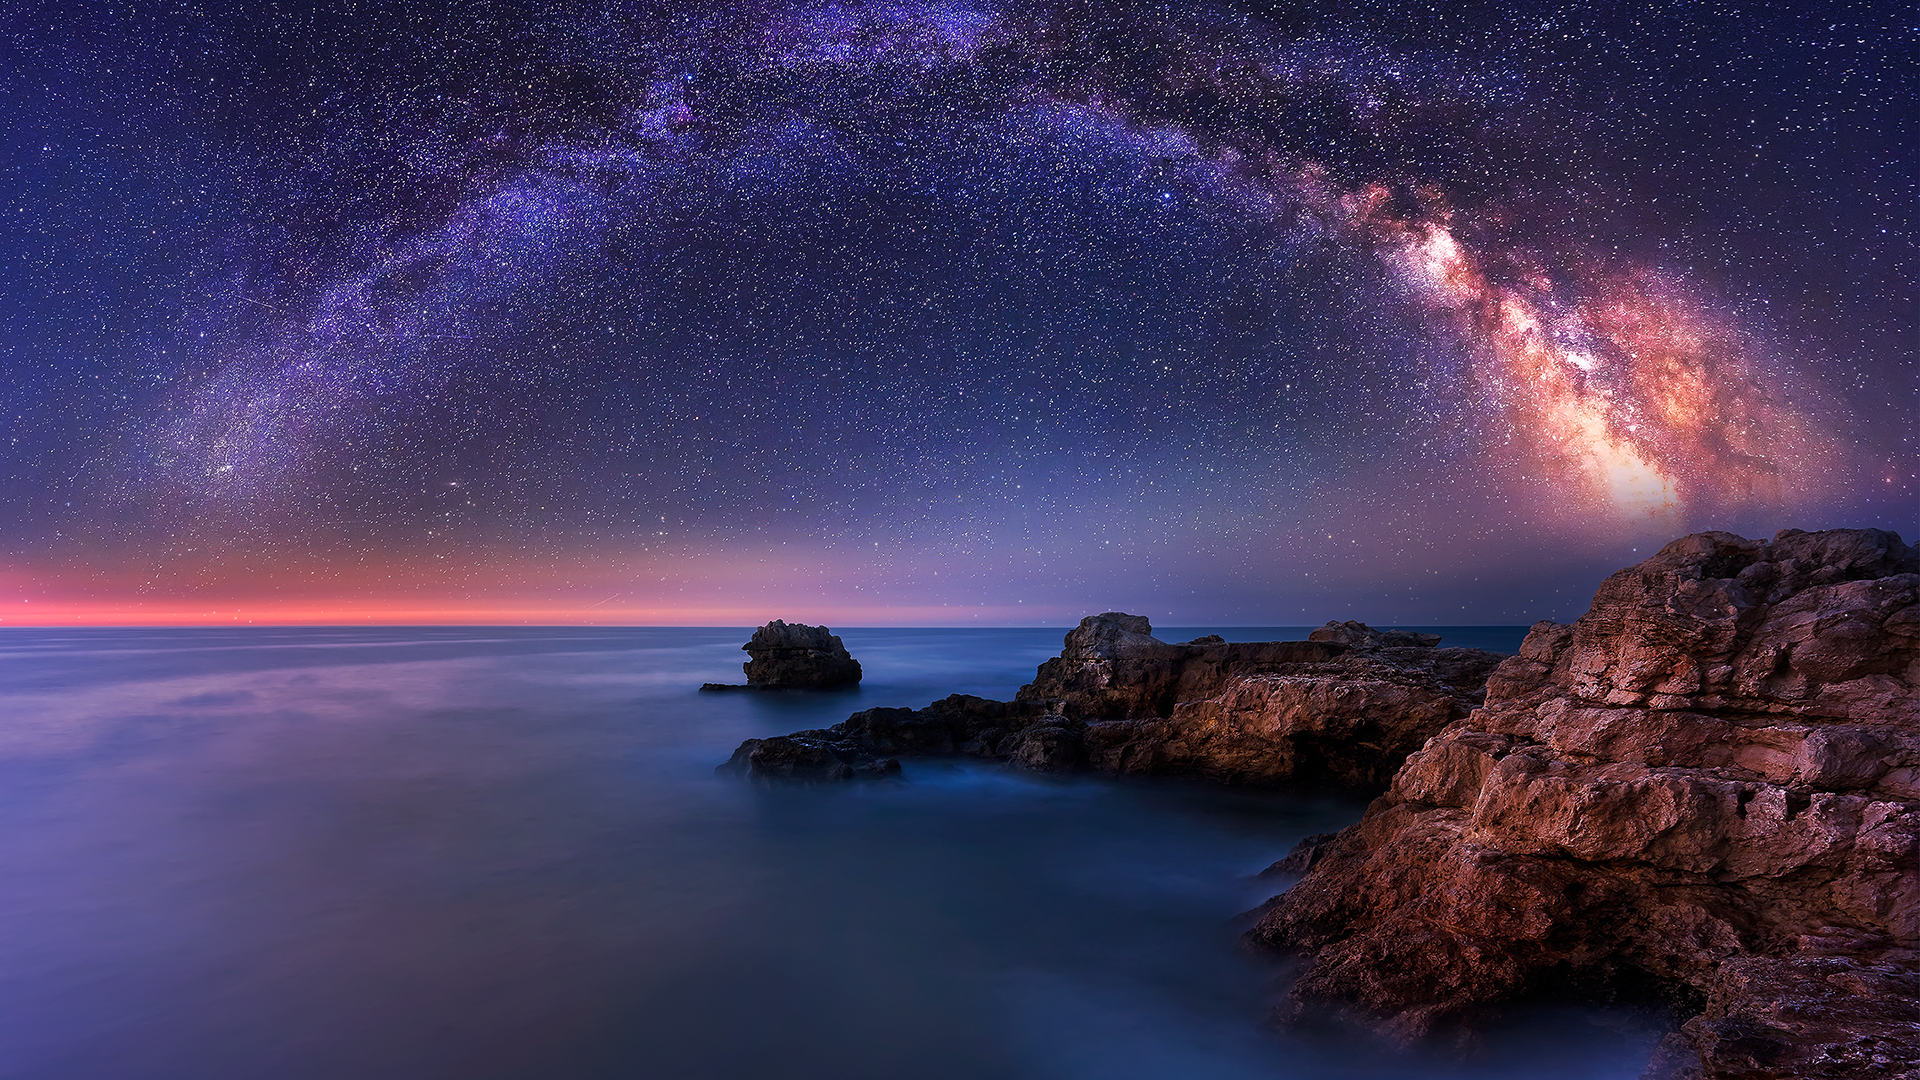 Download this free milky way over the sea tablet wallpaper in hd or 4k 0270 - Tablet wallpaper 4k ...